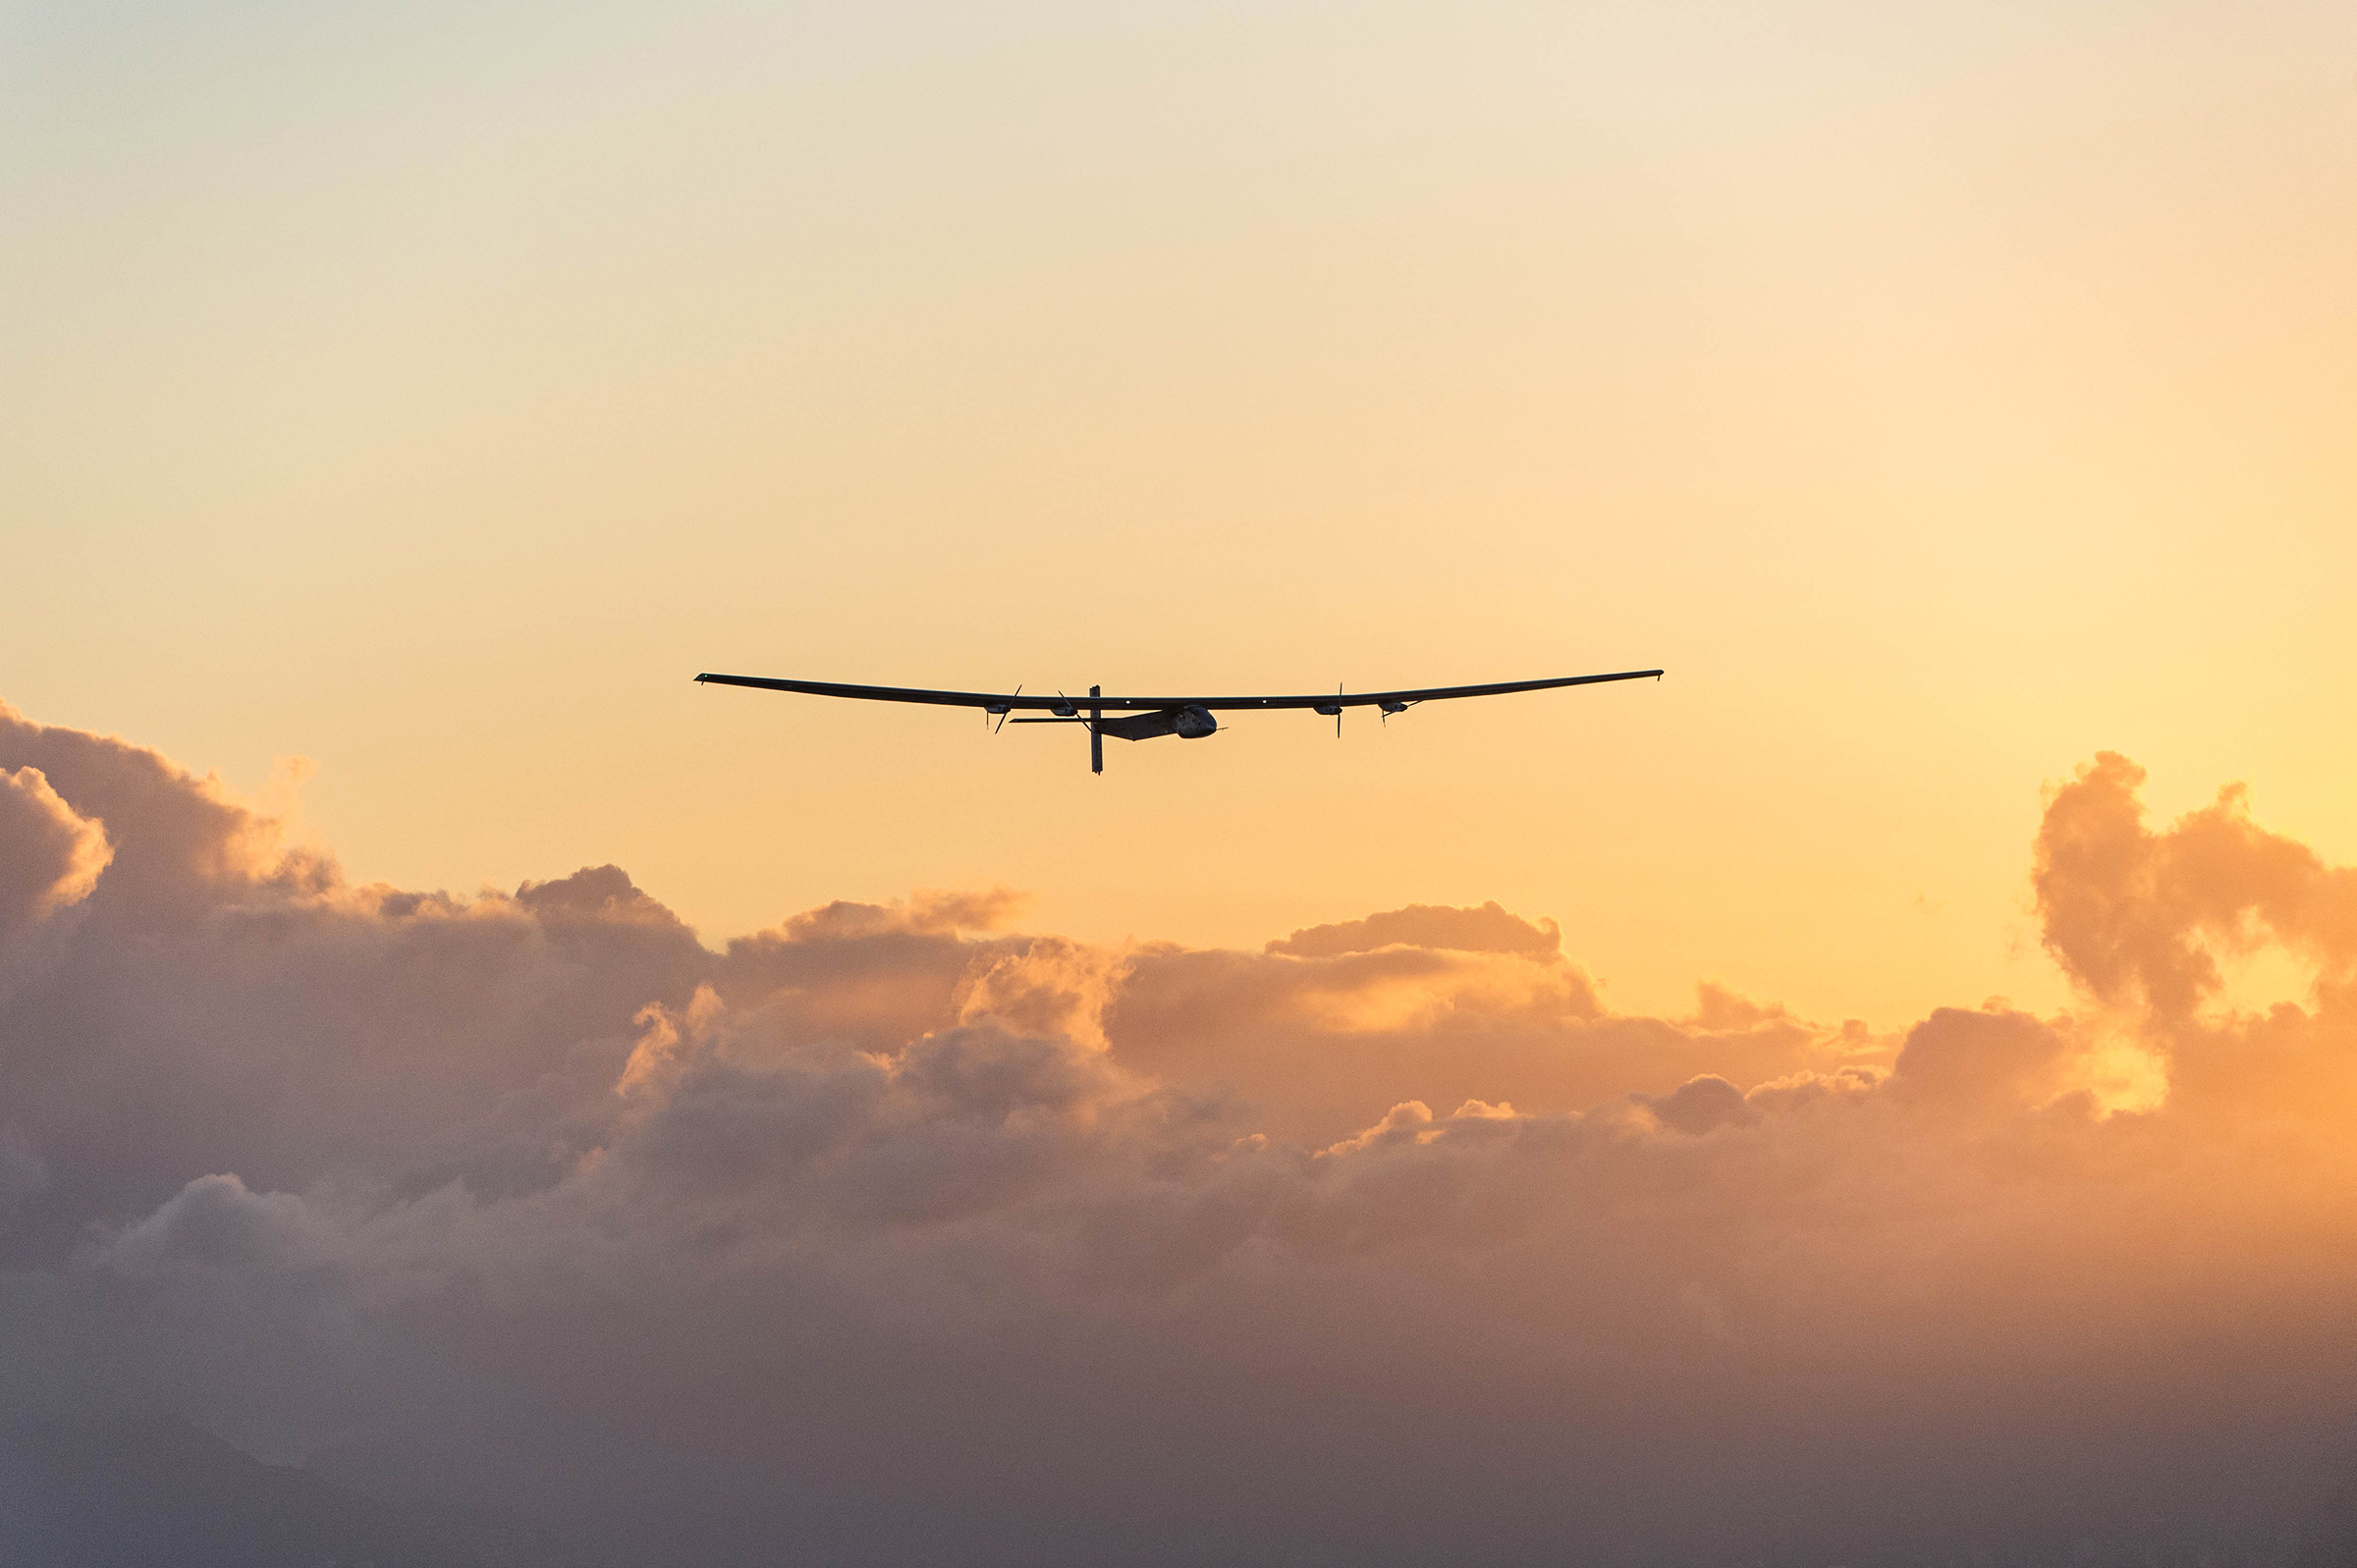 SOLAR IMPULSE 2 IS READY TO FINISH ITS ROUND-THE-WORLD FLIGHT